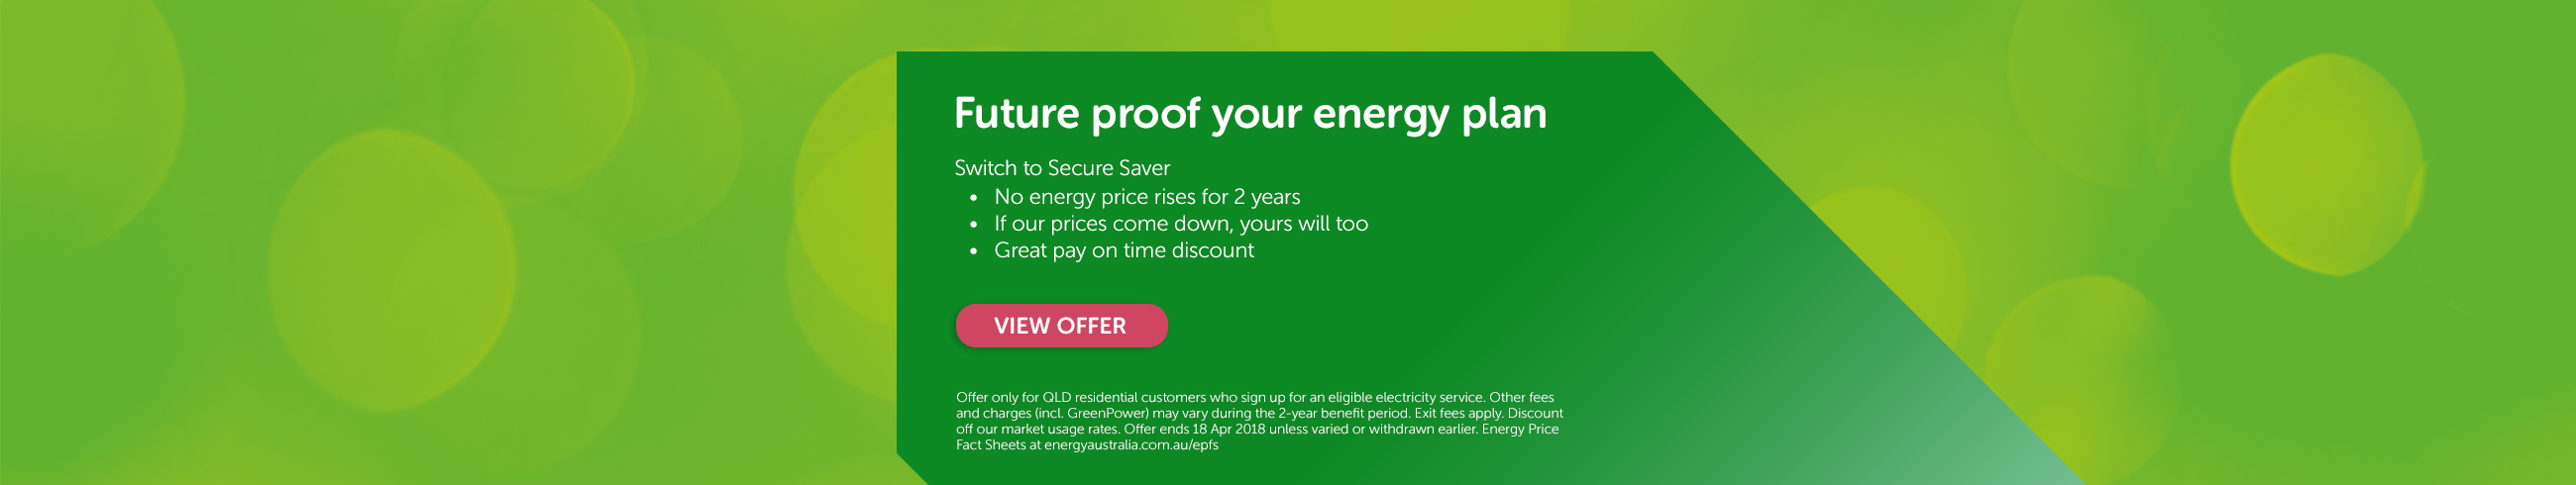 Future proof your energy plan - Switch to Secure Saver